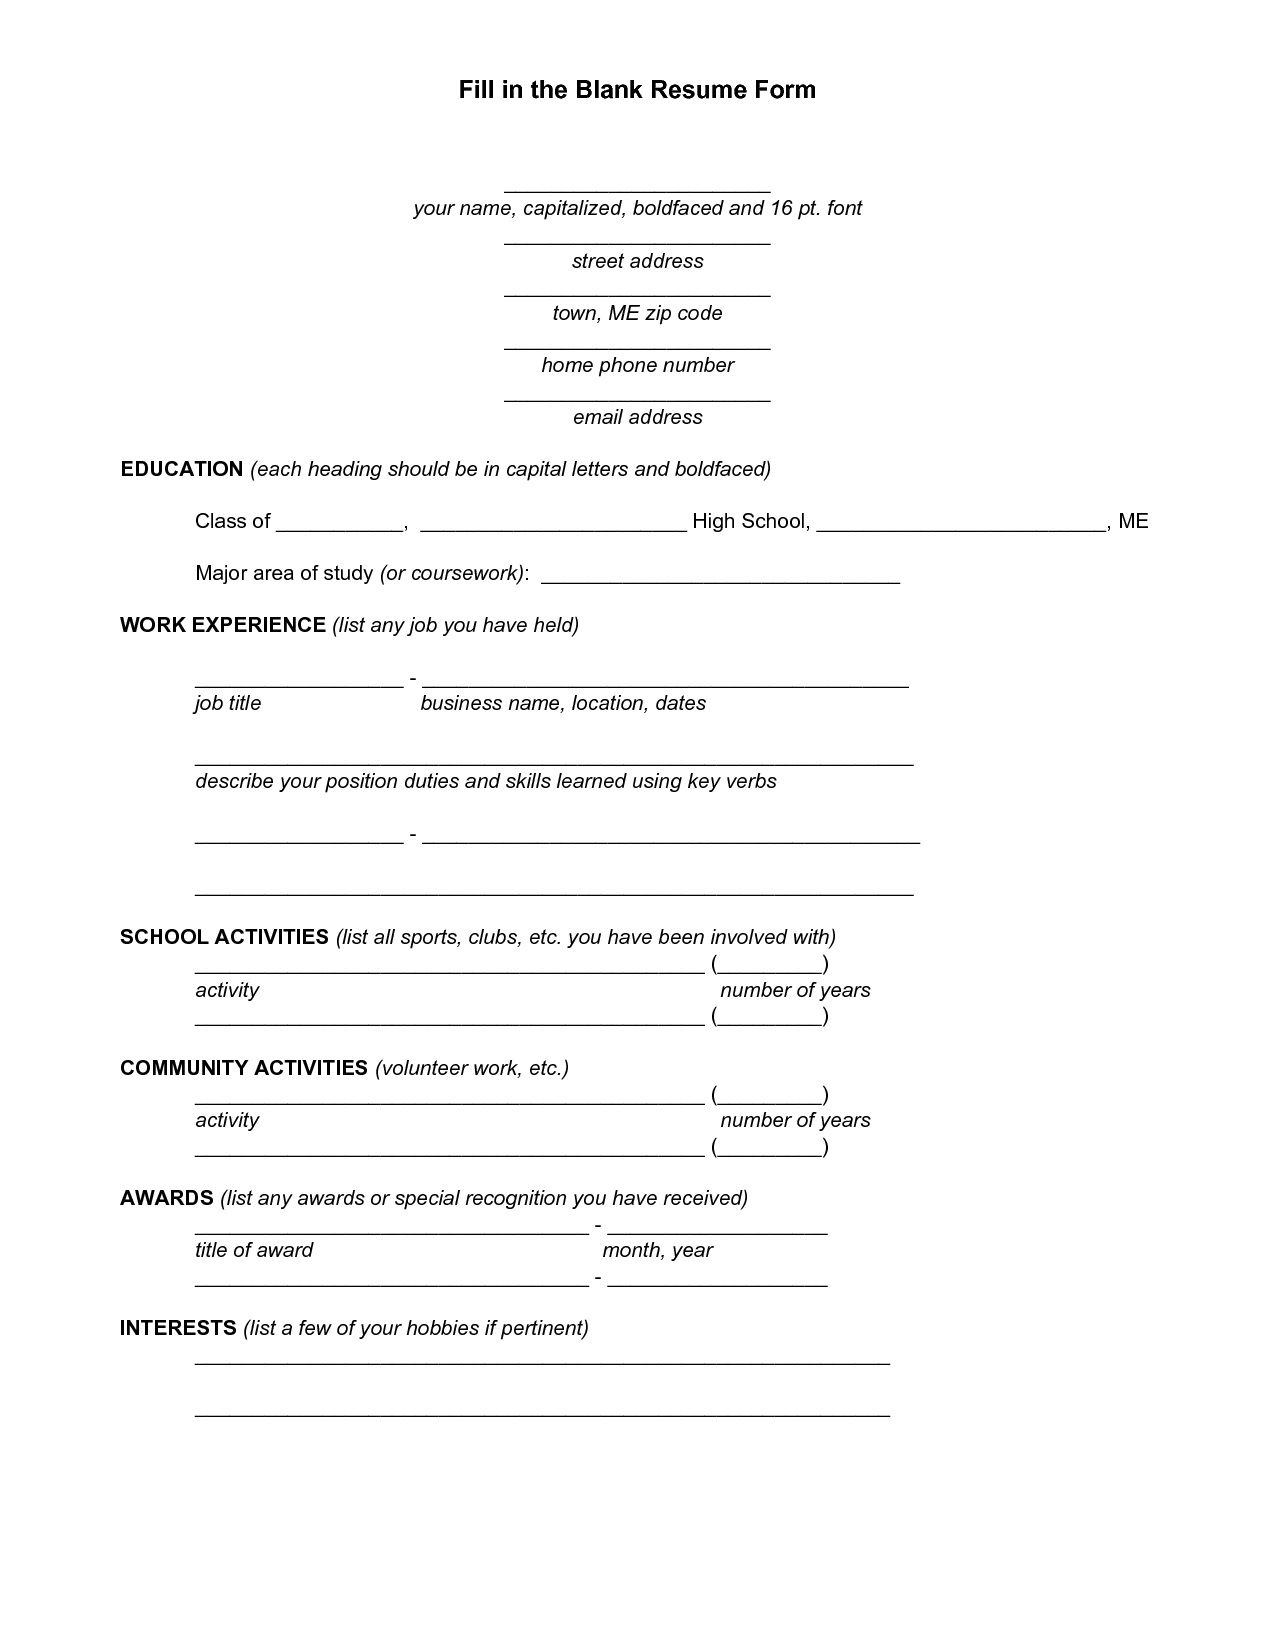 Nice Blank Job Resume Form We Provide As Reference To Make Correct And Good  Quality Resume. Also Will Give Ideas And Strategies